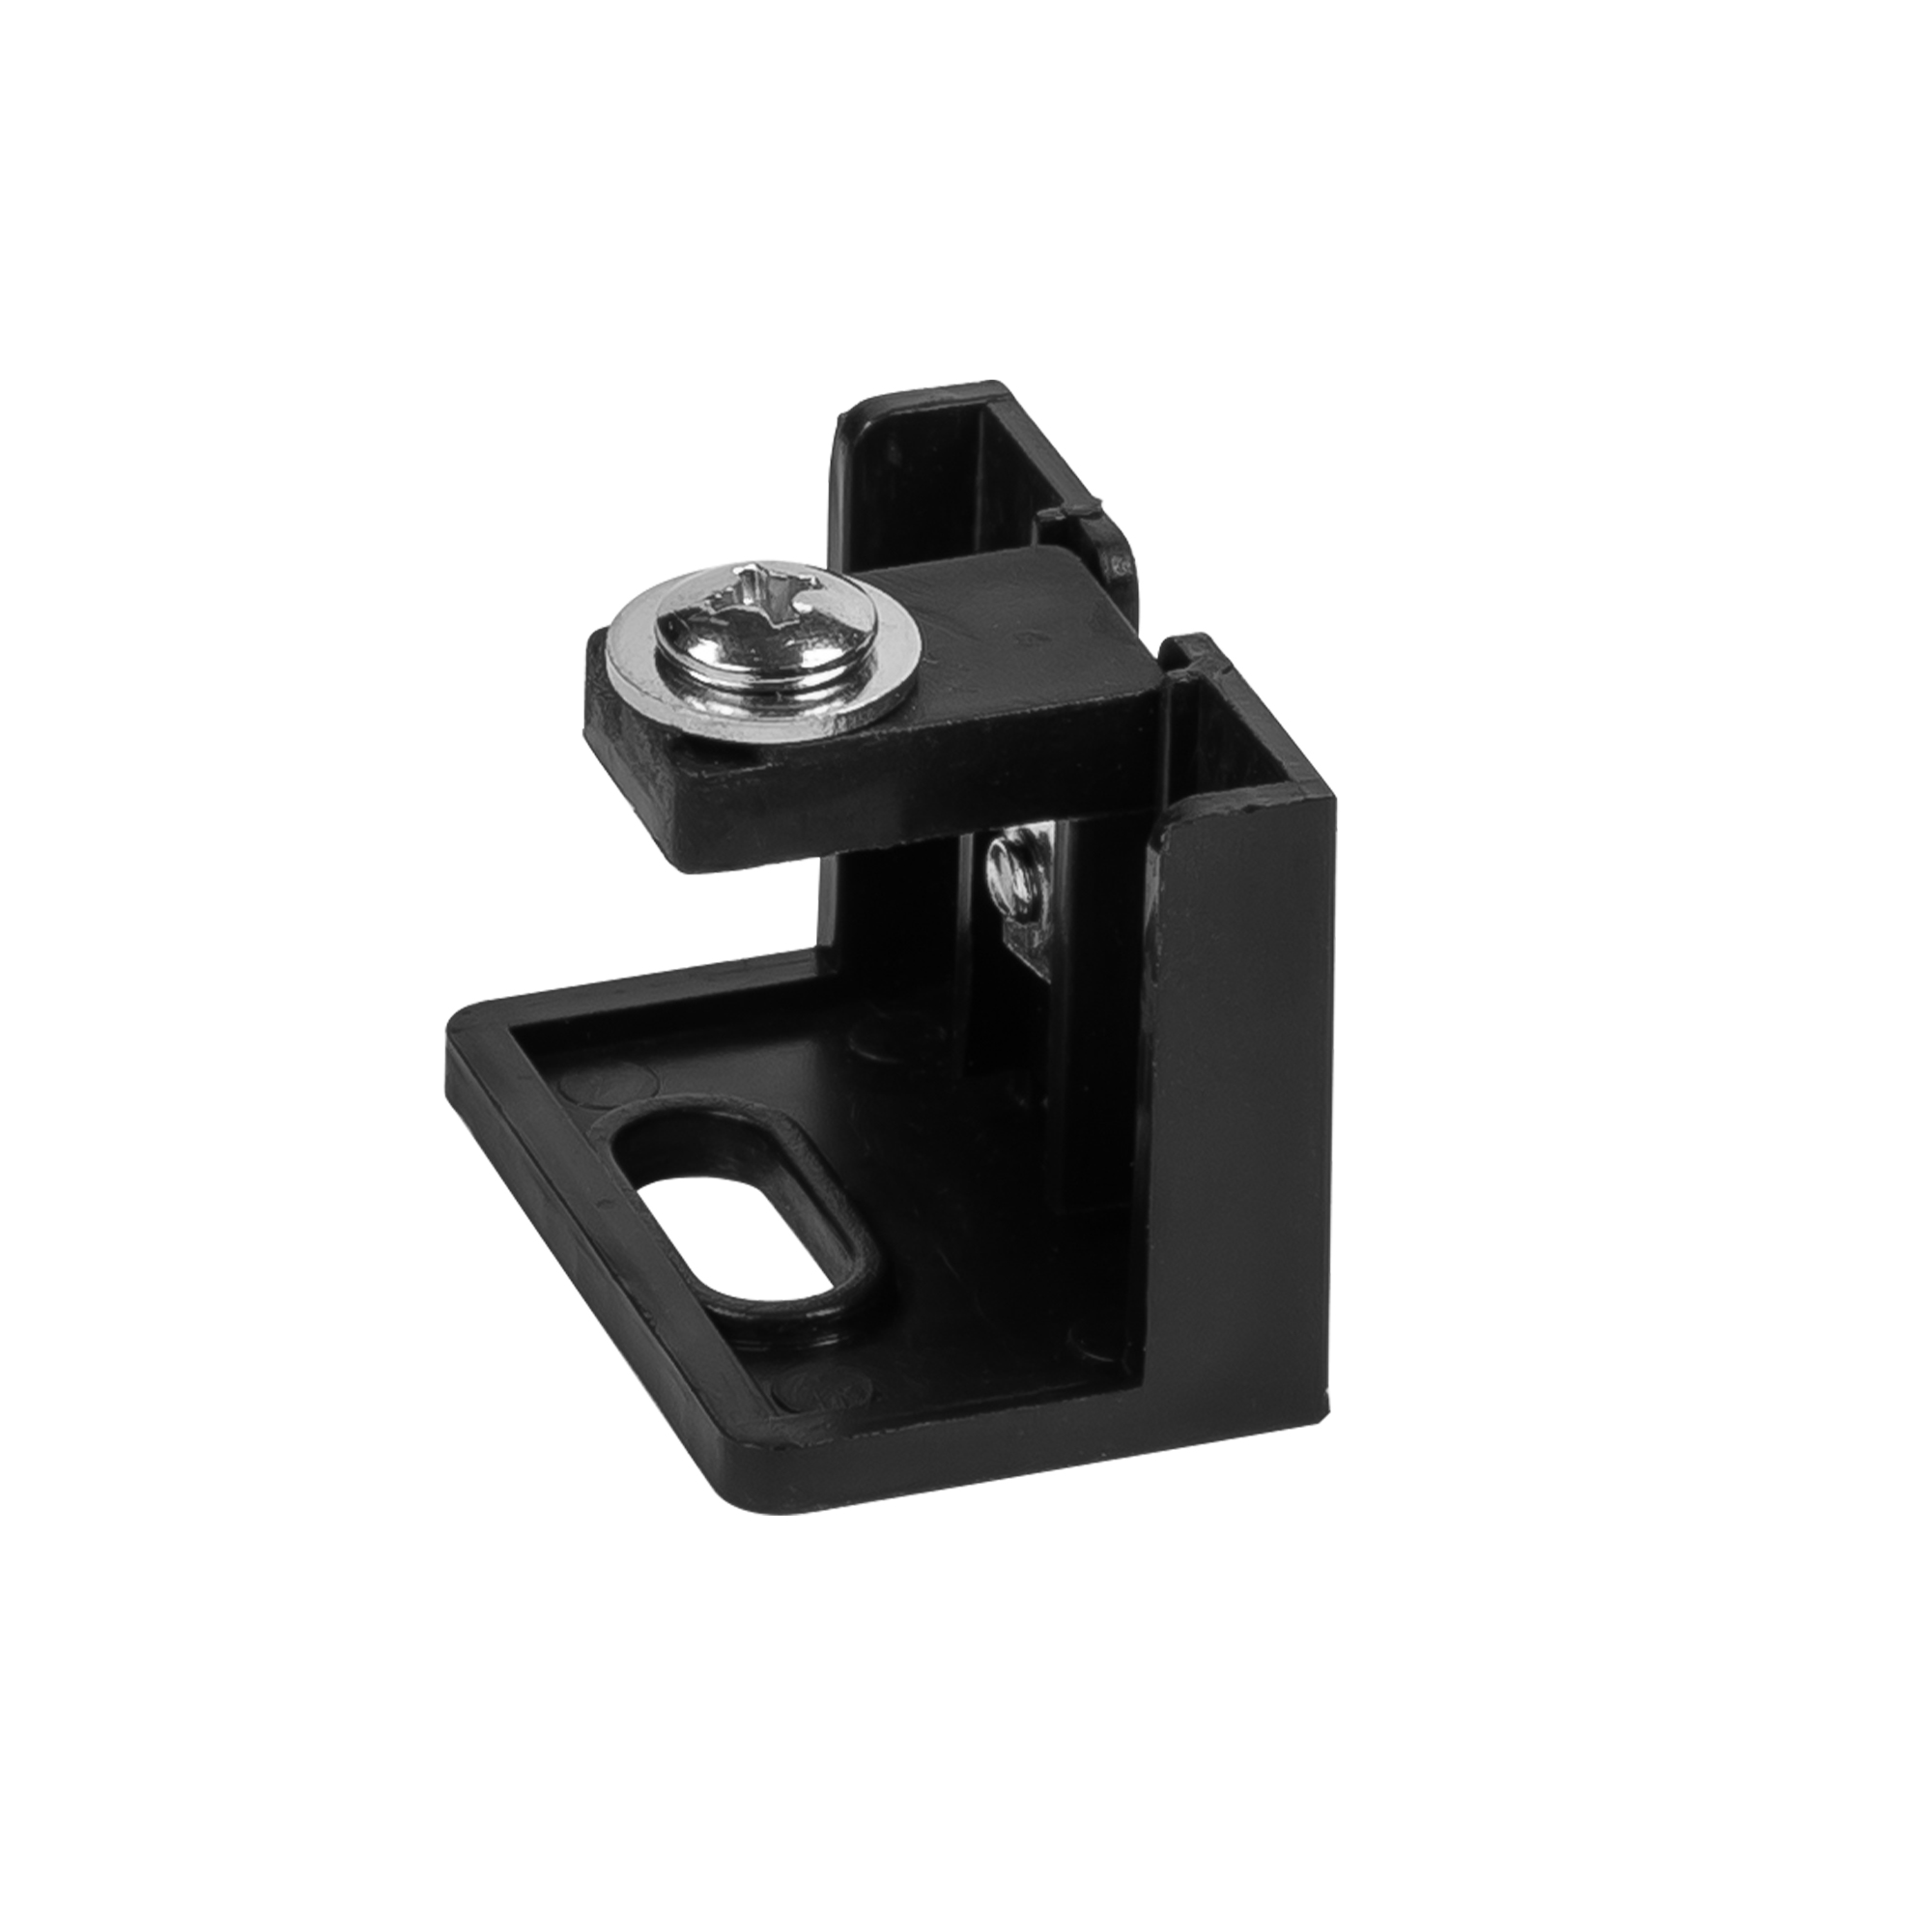 stb parallel bar holder spare part from pacific arc